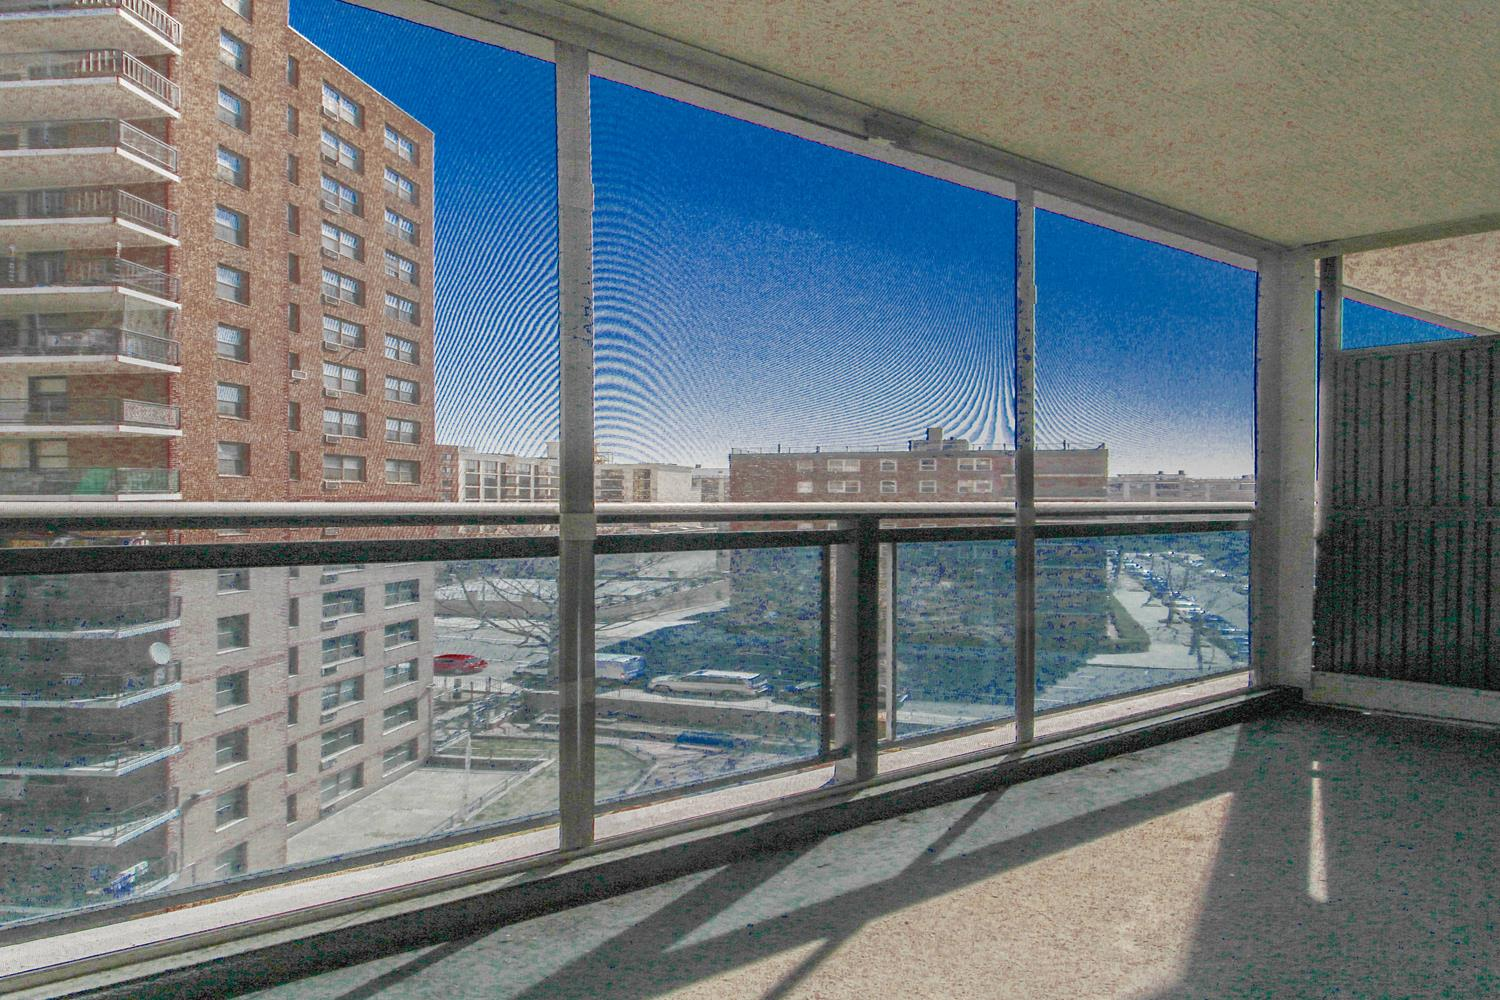 98-20 62nd Drive Rego Park Queens NY 11374